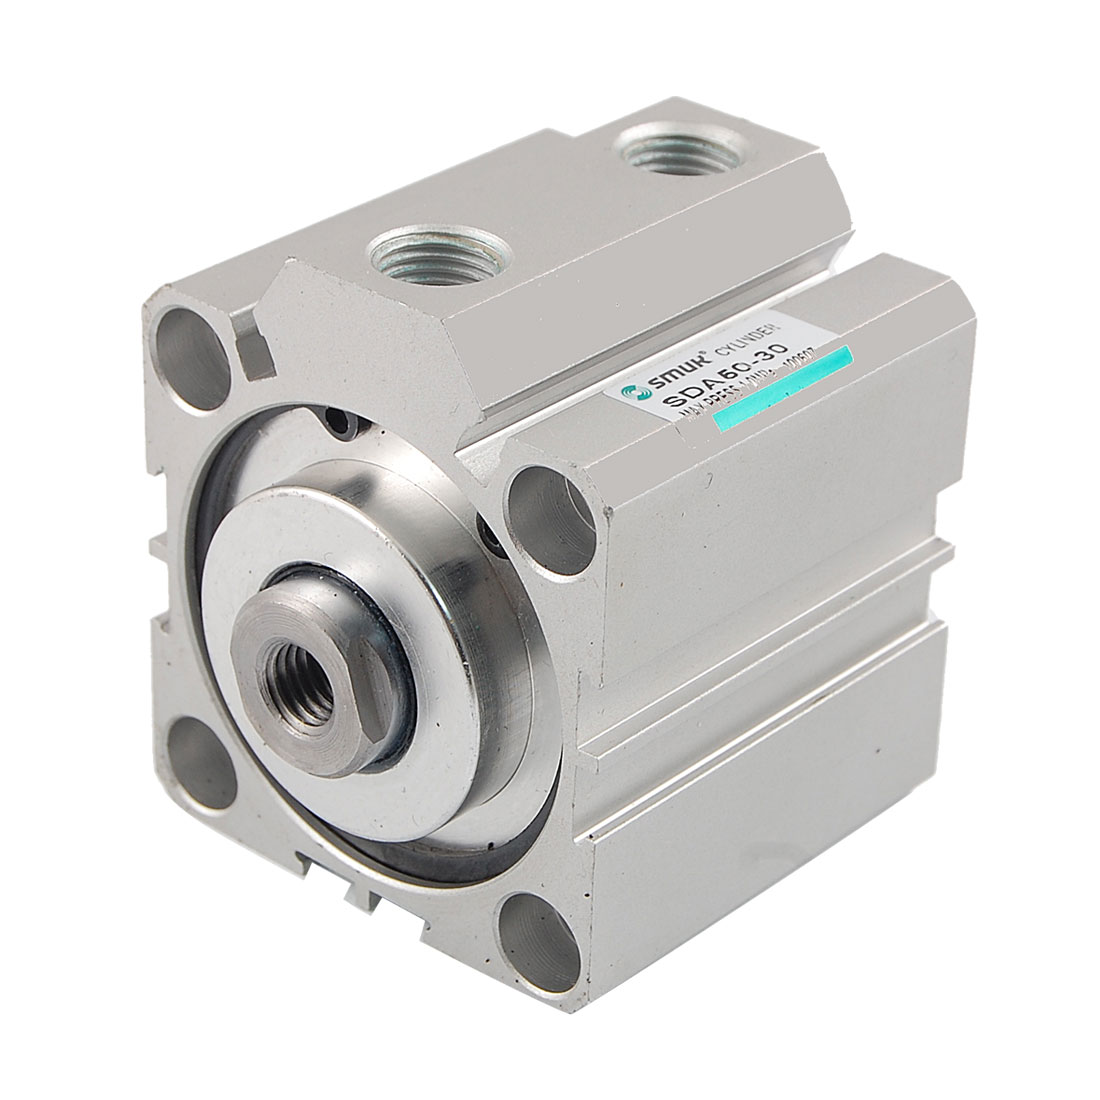 UXCELL 50Mm Bore 30Mm Stroke Double Action Pneumatic Actuator Air Cylinder Sda 50-30 tec2 19003 3a 16v 15w 30 30mm double